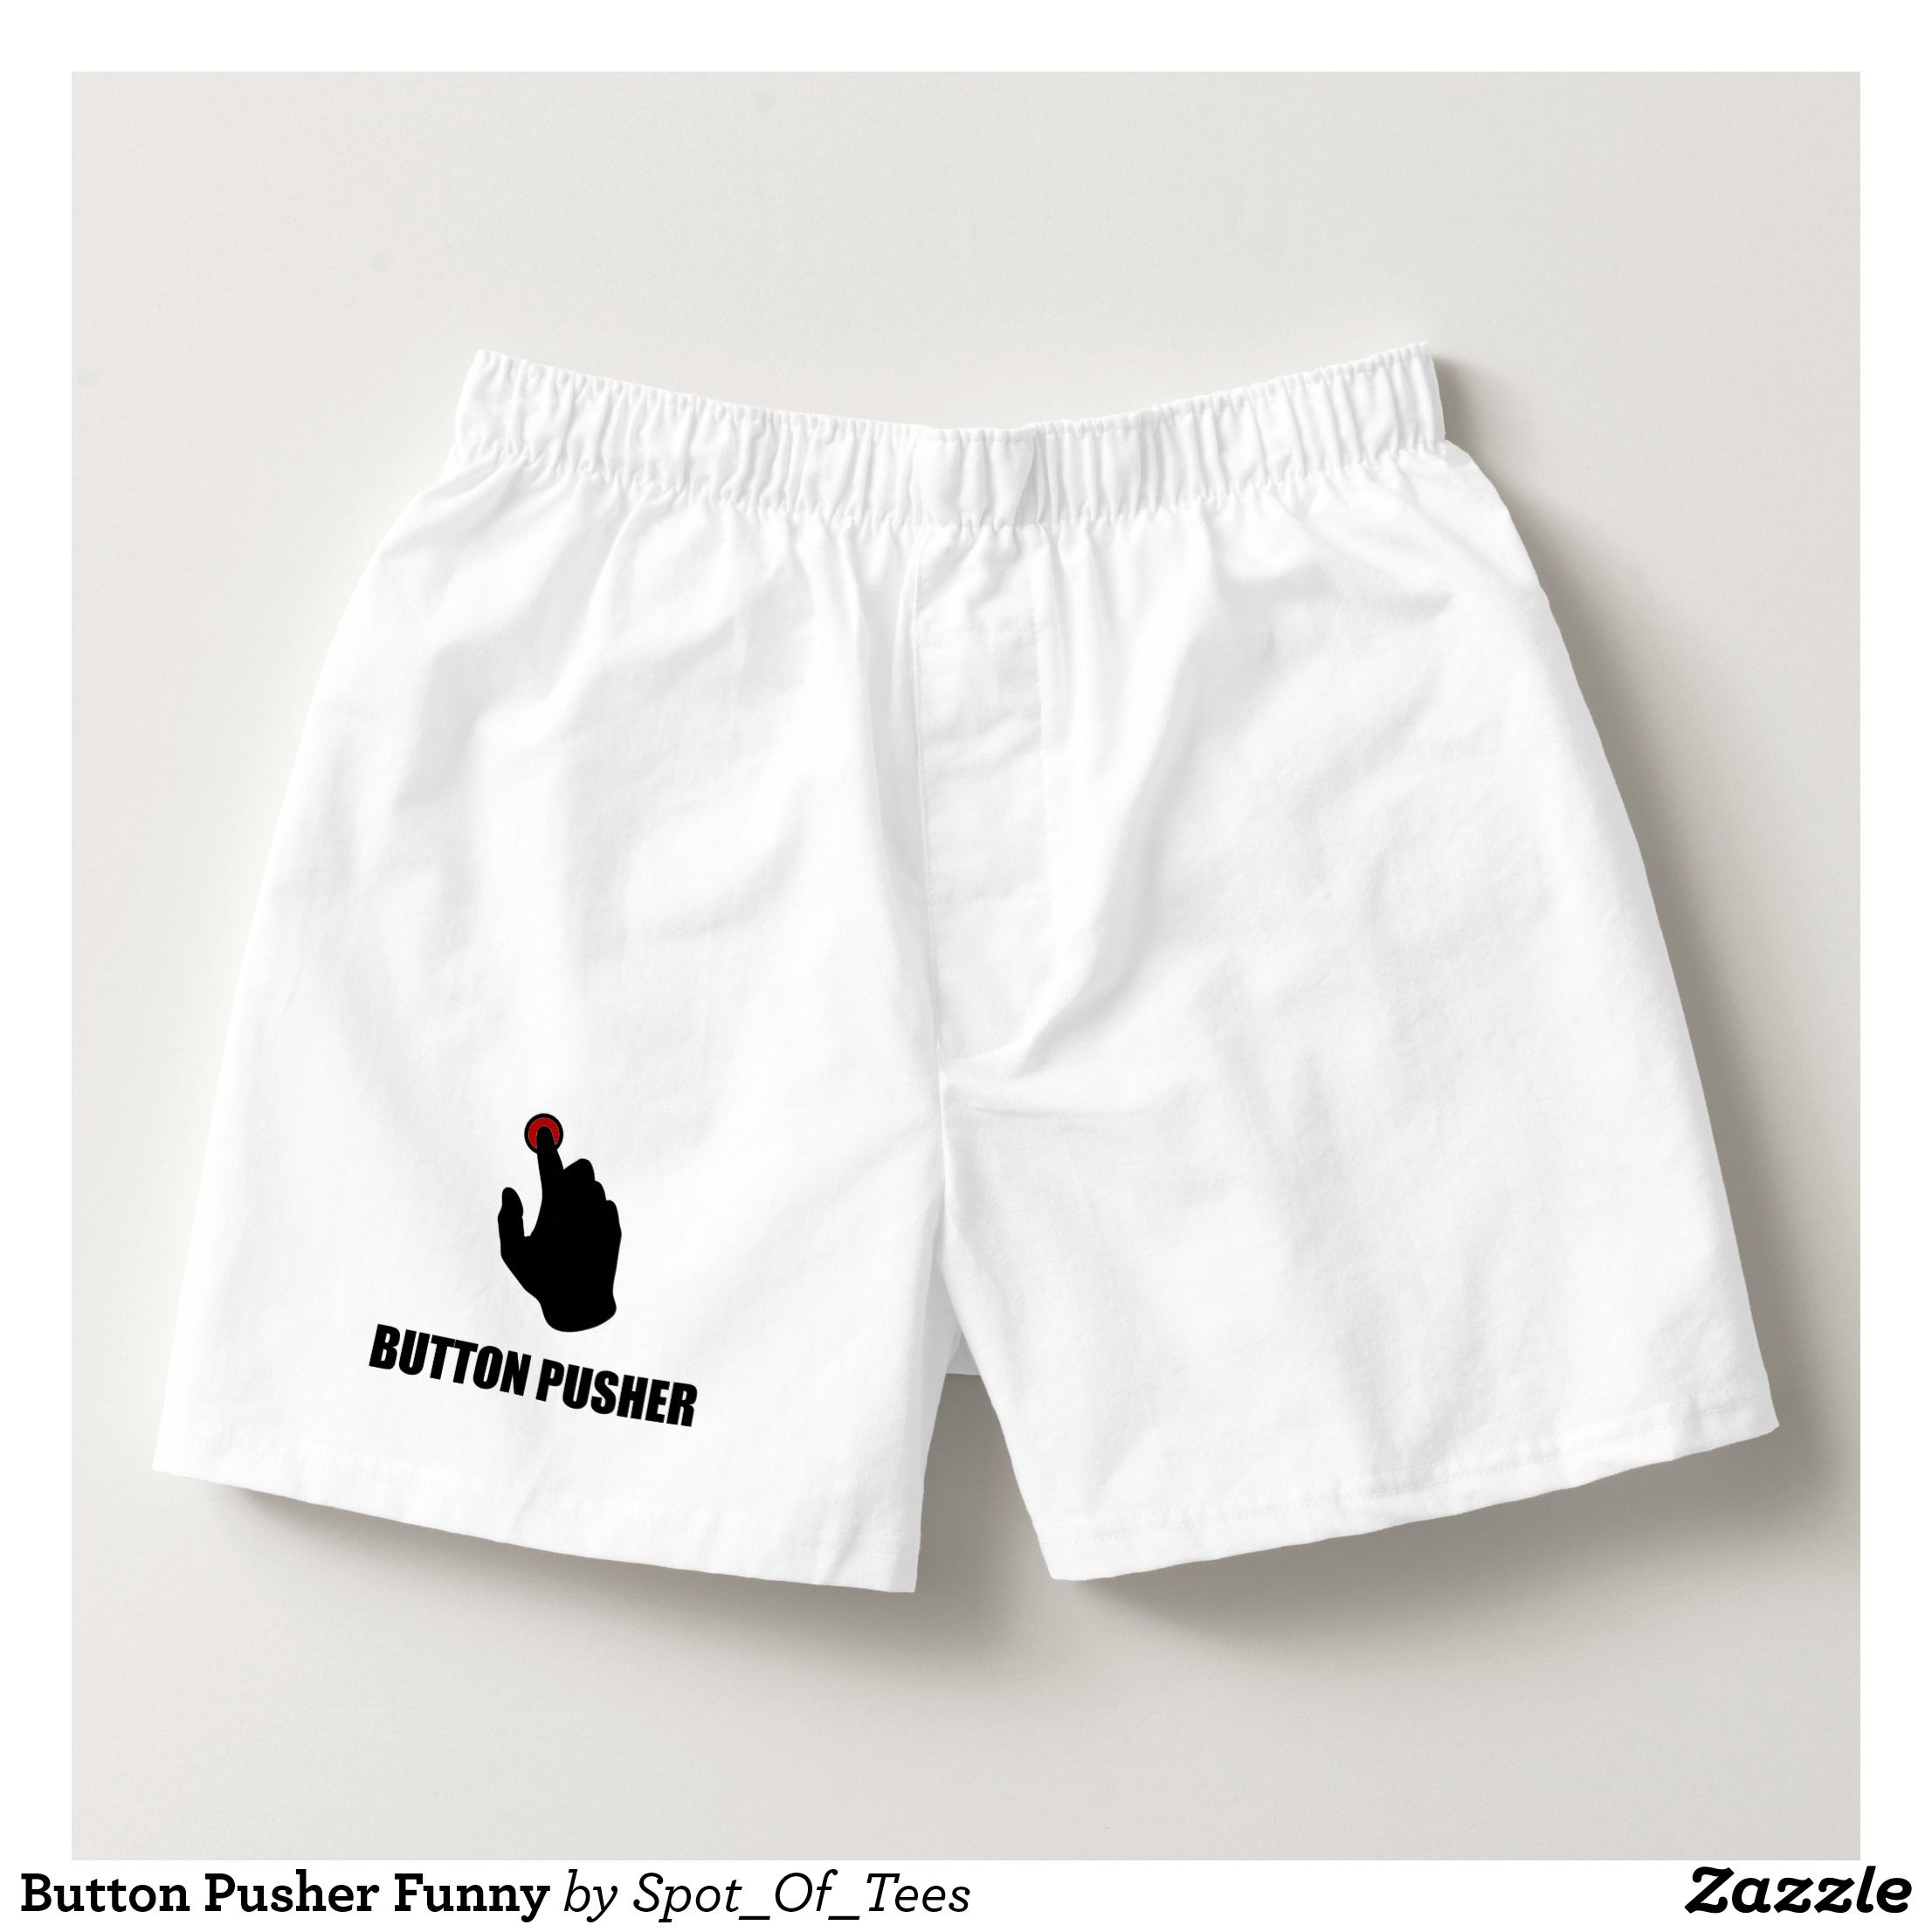 ALM786t-Mens Funny Boxer Short Underwear-Dont Need Permit GUN-novelty Gifts